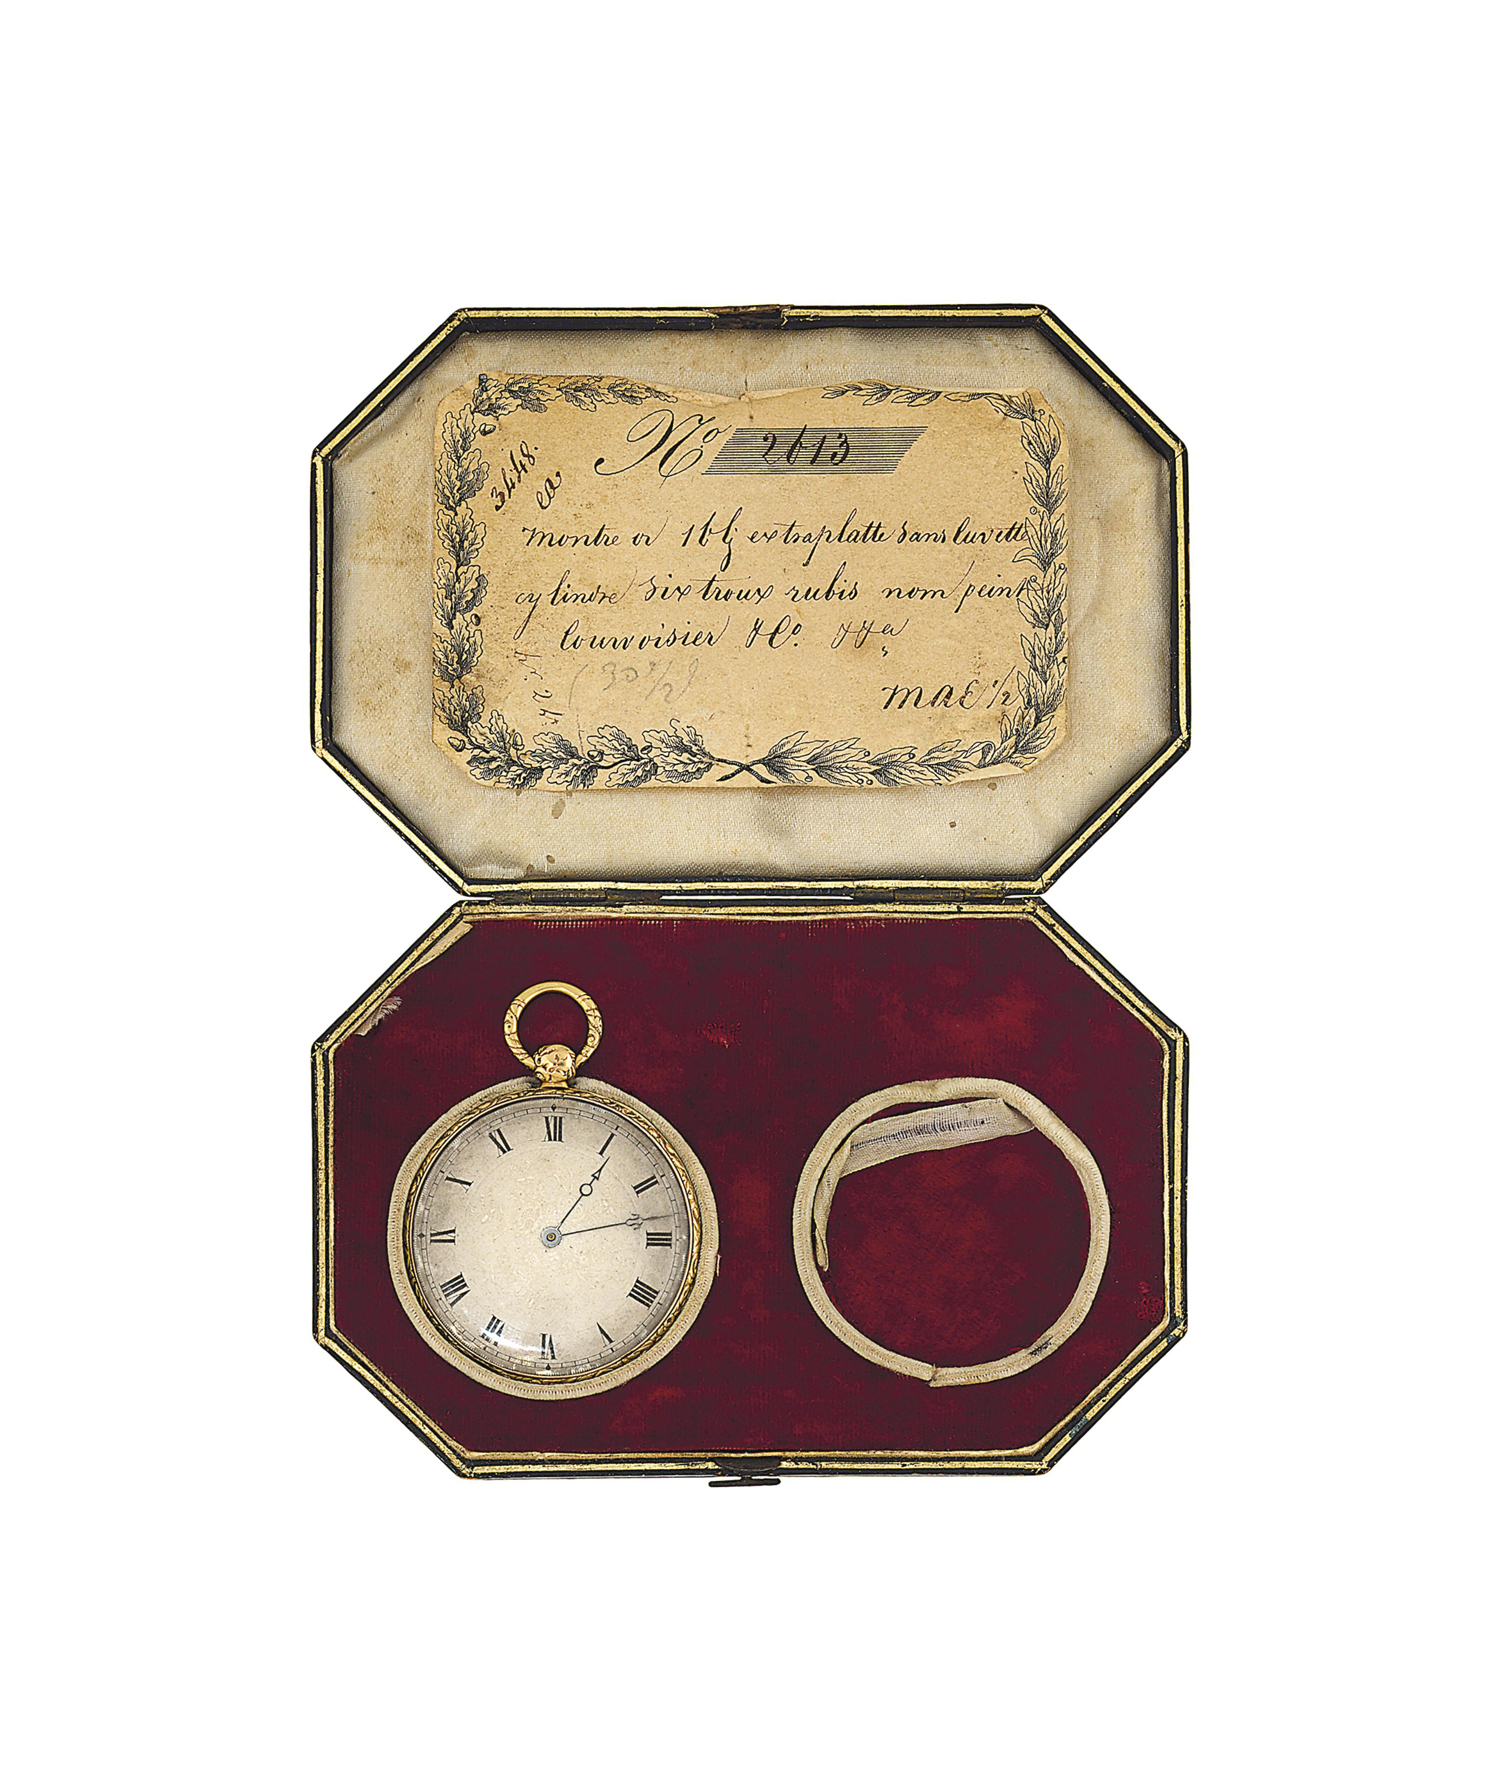 An early 19th century gold open face pocket watch, by Courvoisier & Co